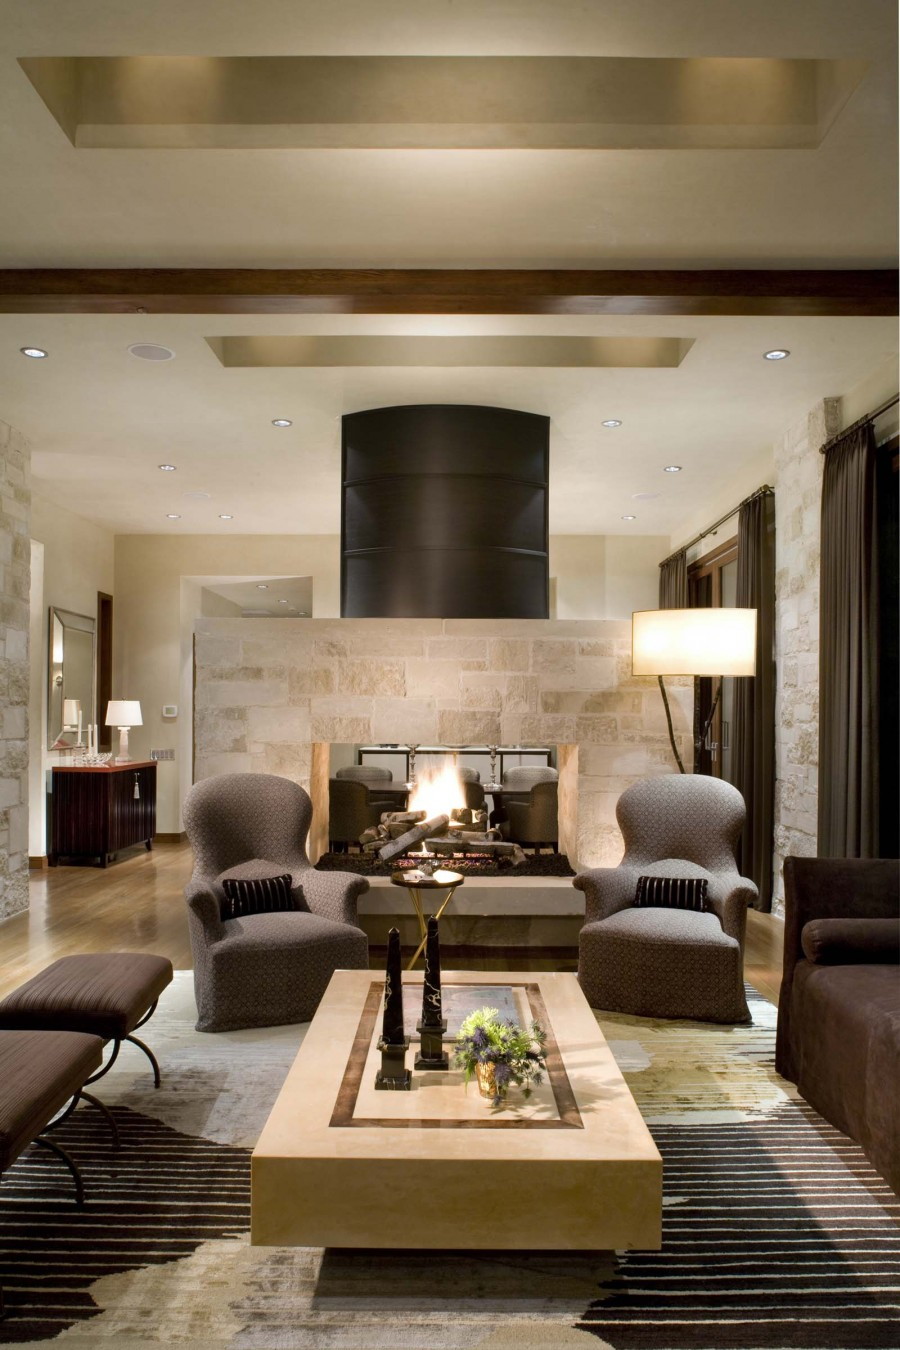 16 fabulous earth tones living room designs decoholic for Modern living room design ideas